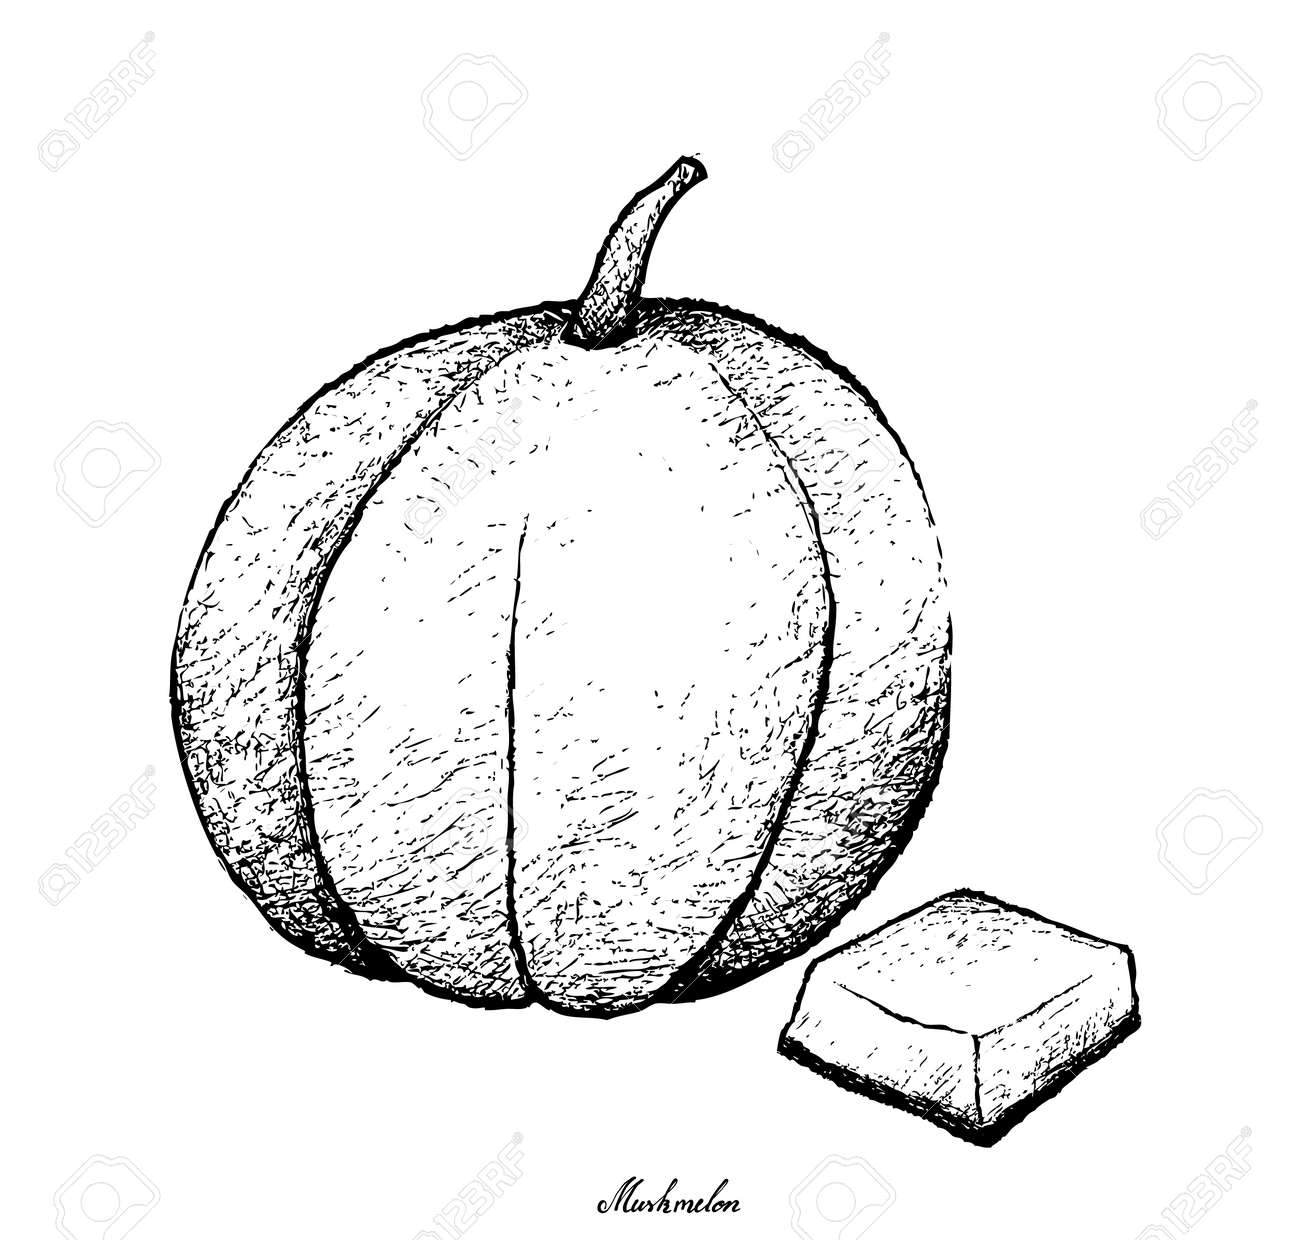 Fresh Fruit Illustration Hand Drawn Sketch Of Muskmelon Cantaloupe Royalty Free Cliparts Vectors And Stock Illustration Image 94404341 Find & download free graphic resources for cantaloupe. 123rf com